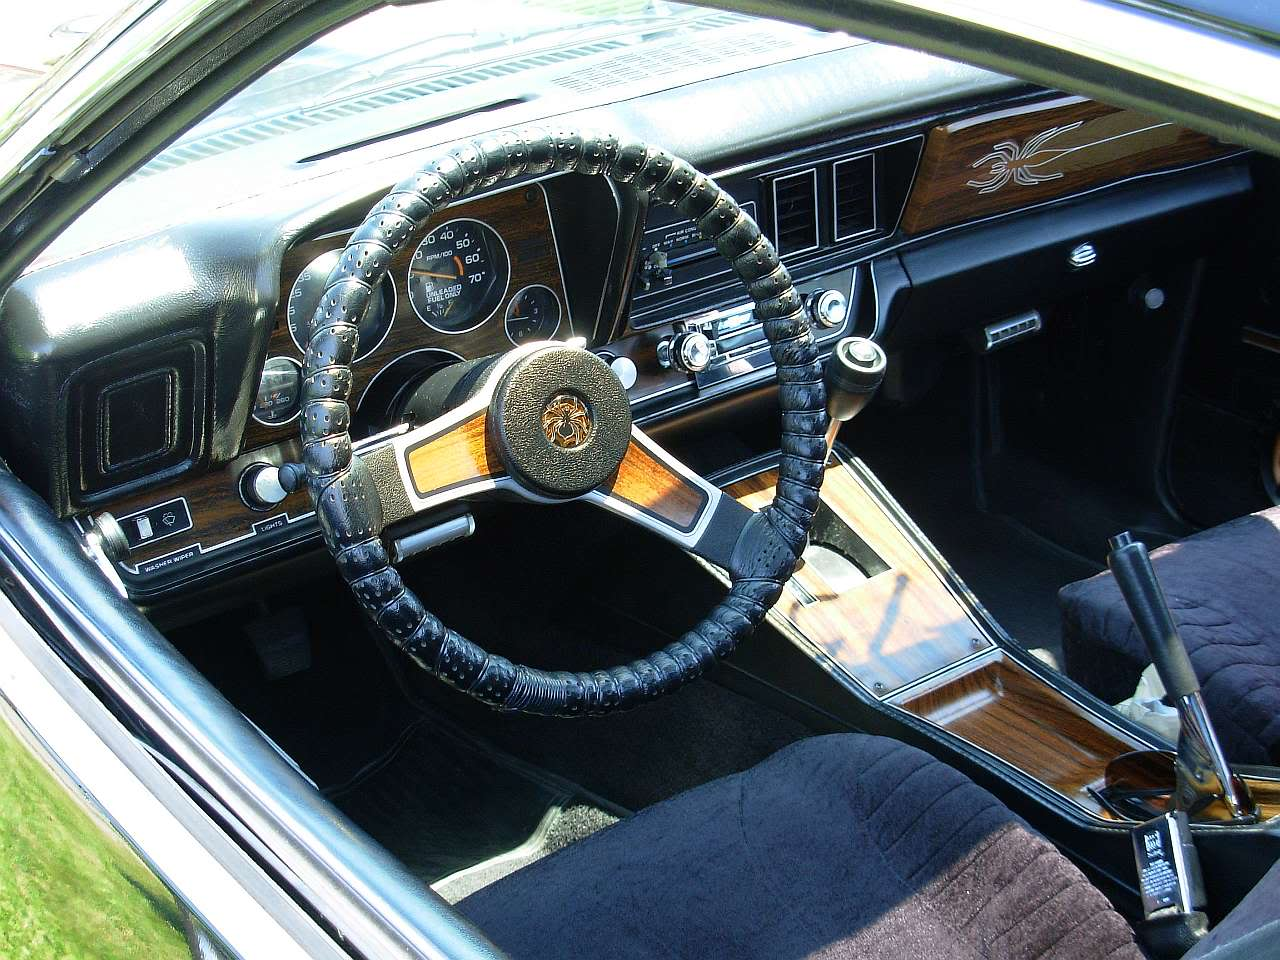 McCready's Monza interior